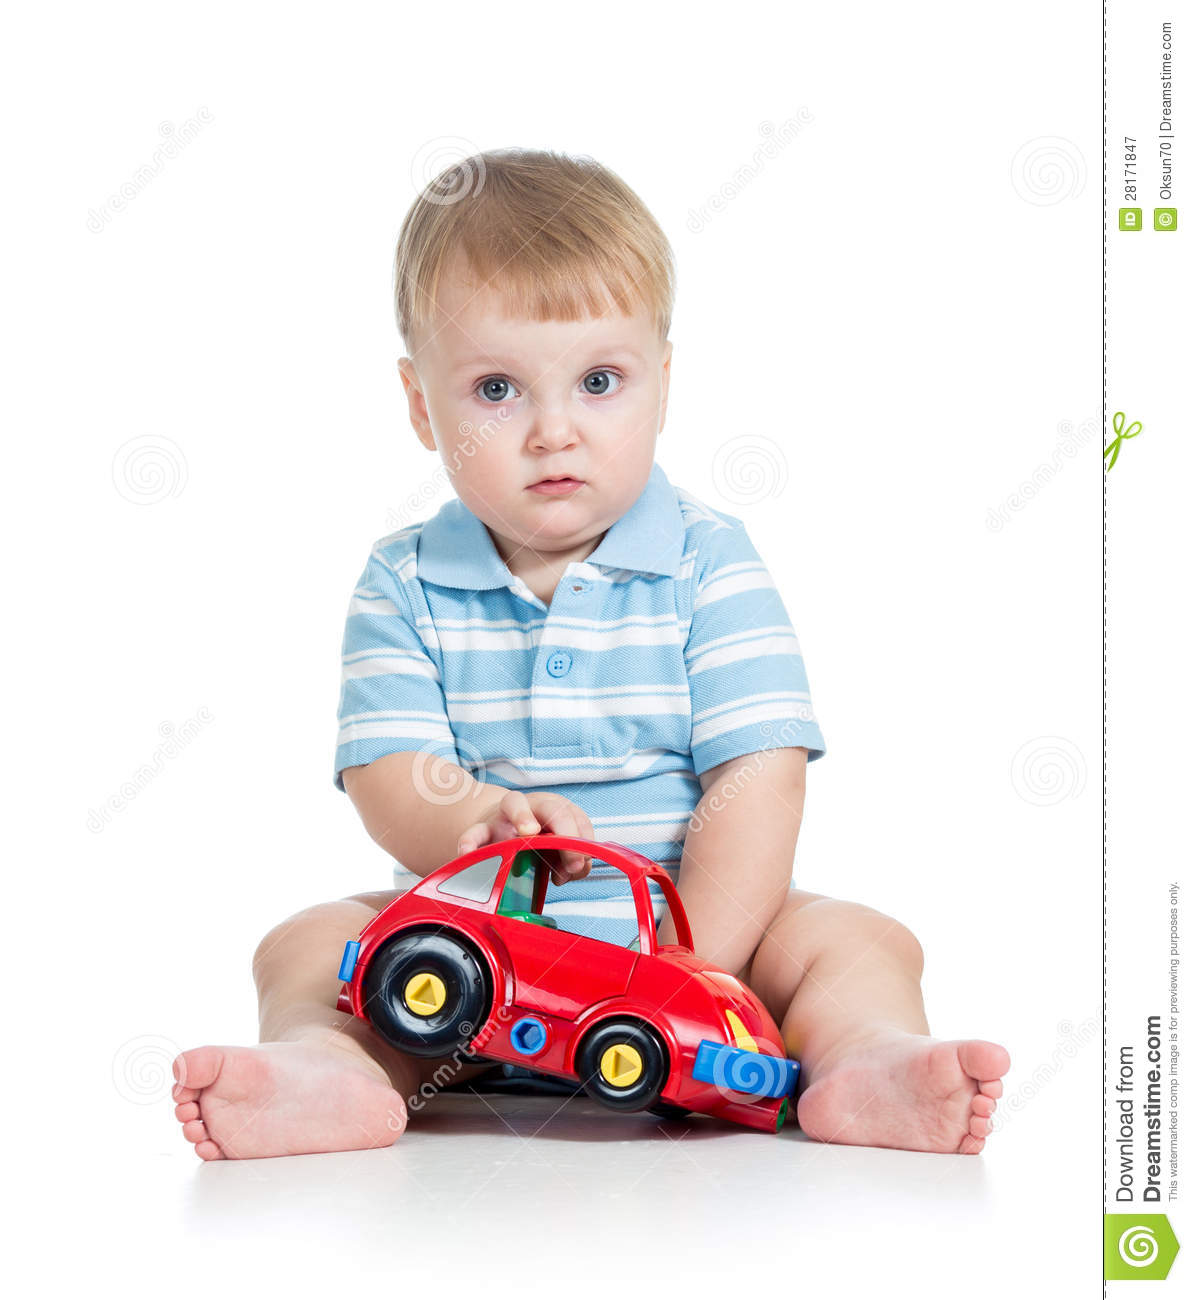 Boy Toddler Toys : Baby boy playing with toy car stock image